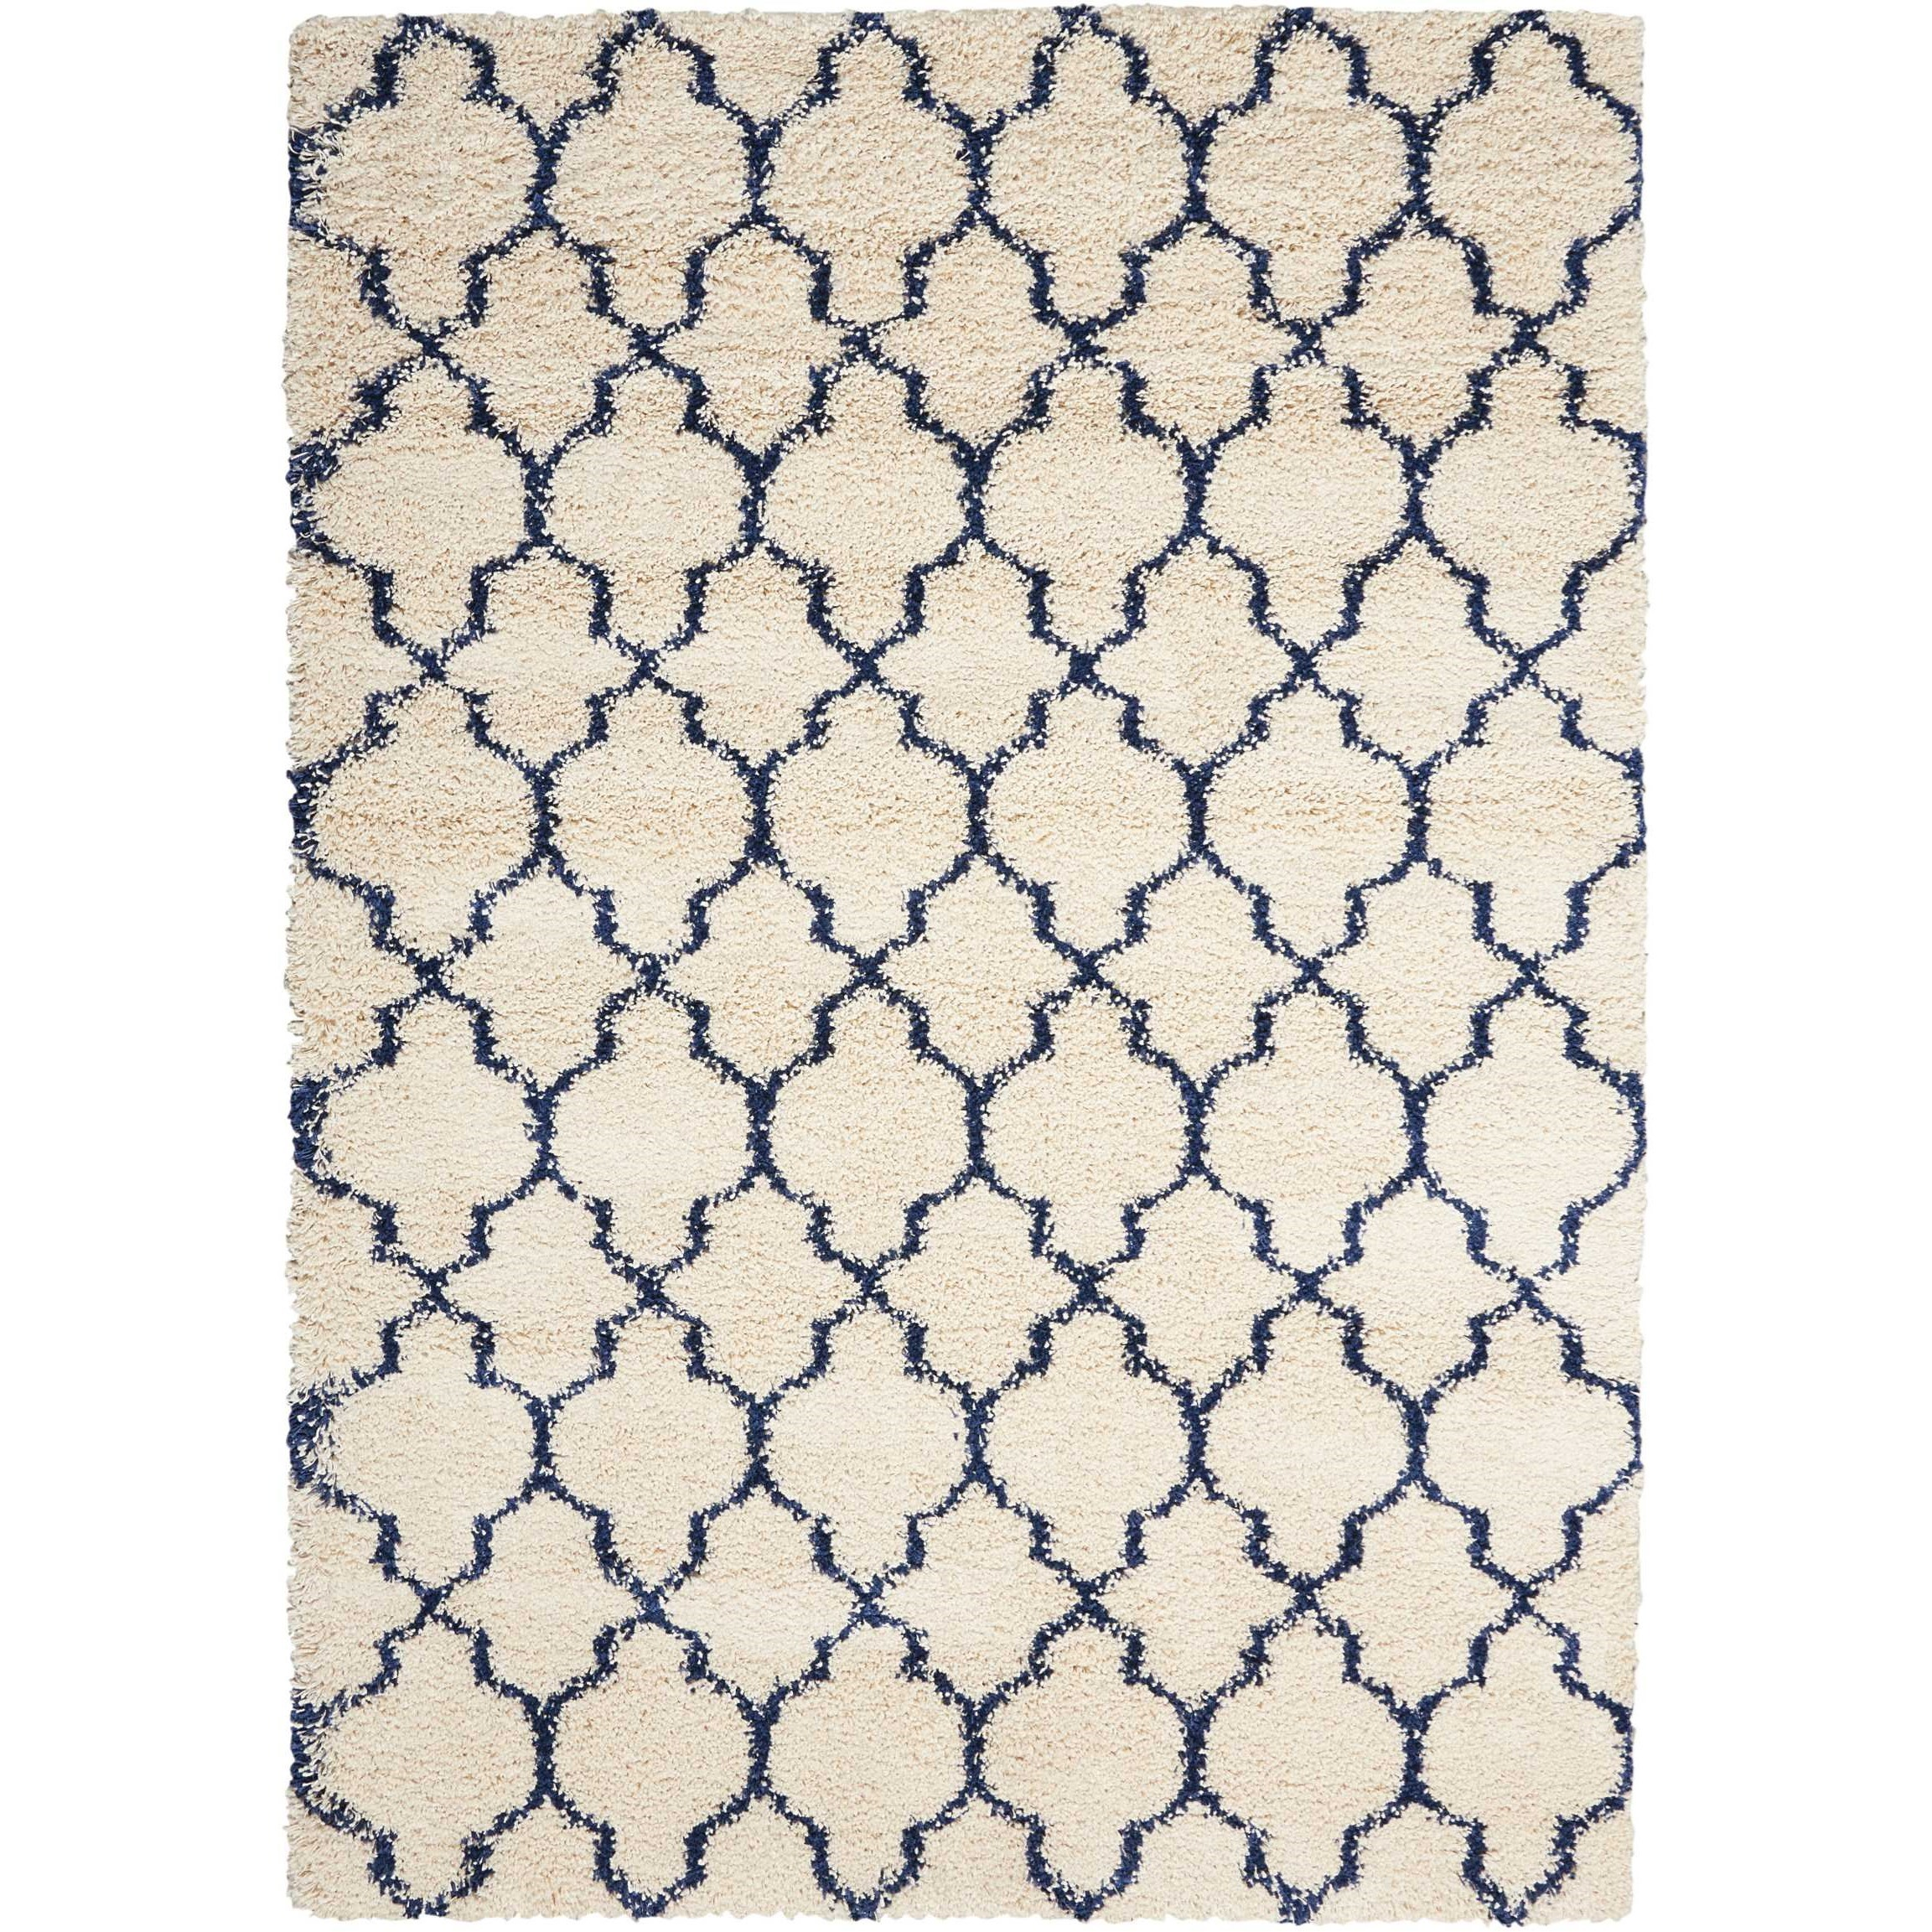 "Amore 7'10"" x 10'10"" Ivory/Blue Rectangle Rug by Nourison at Sprintz Furniture"